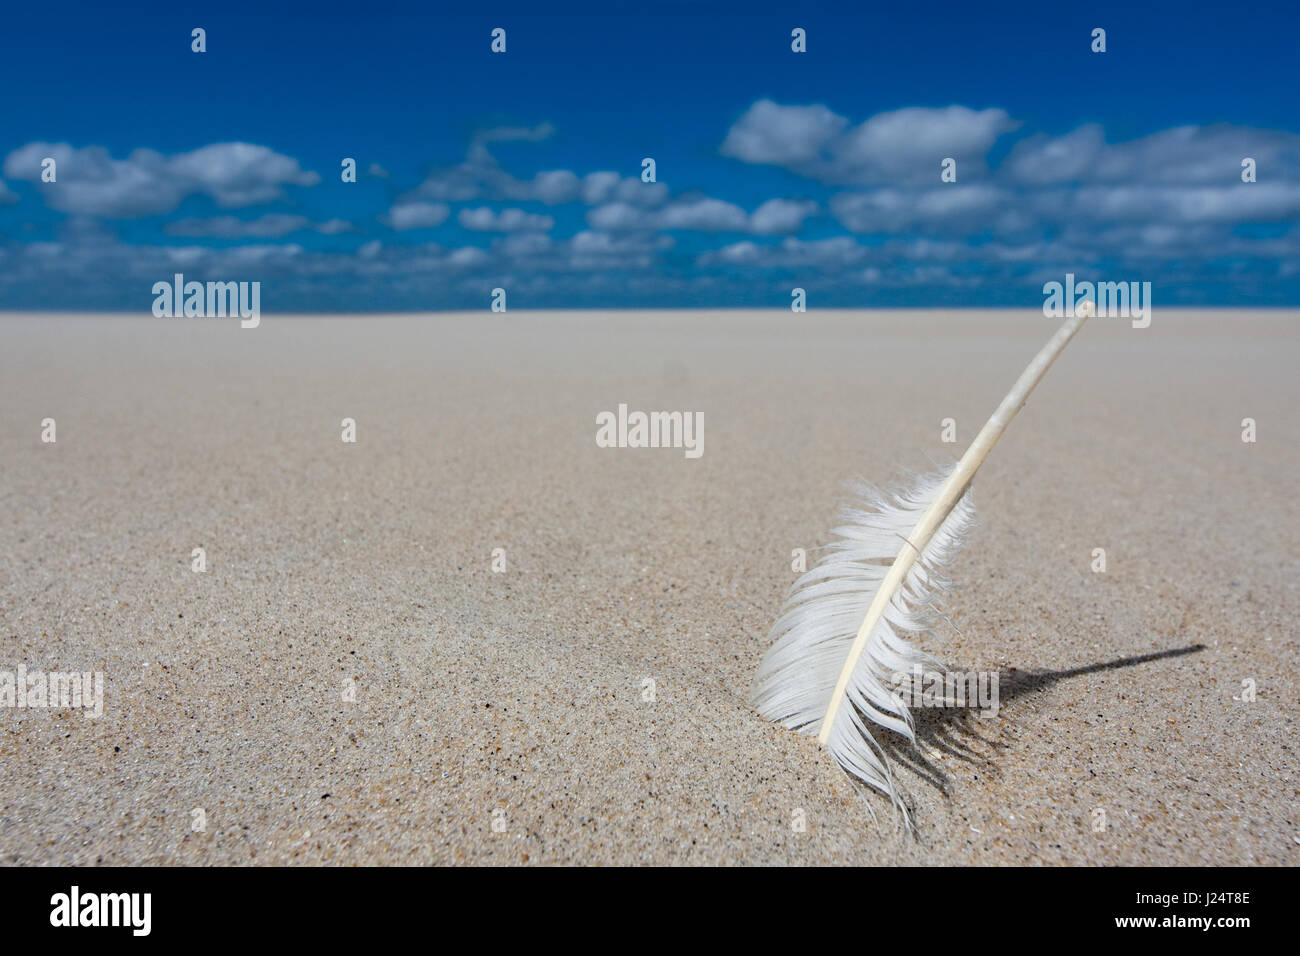 A white feather sticking in sand of a flat deserted landscape. - Stock Image